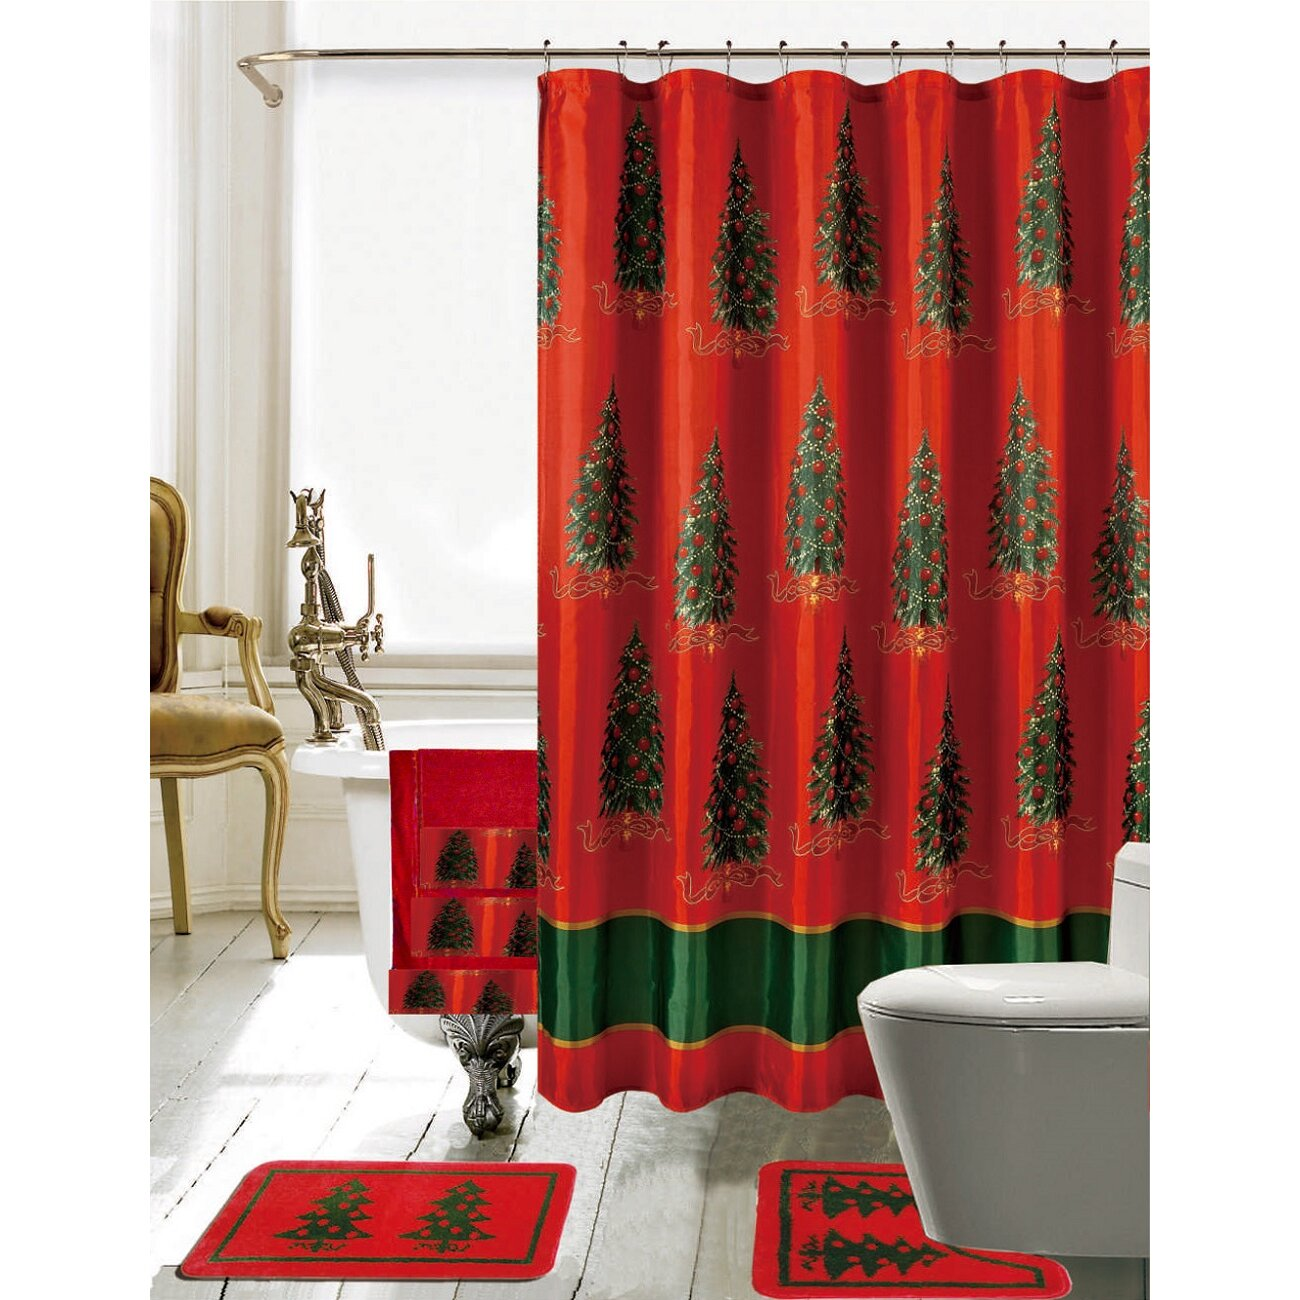 Christmas shower curtain set canada curtain menzilperde net for Wayfair home decor canada